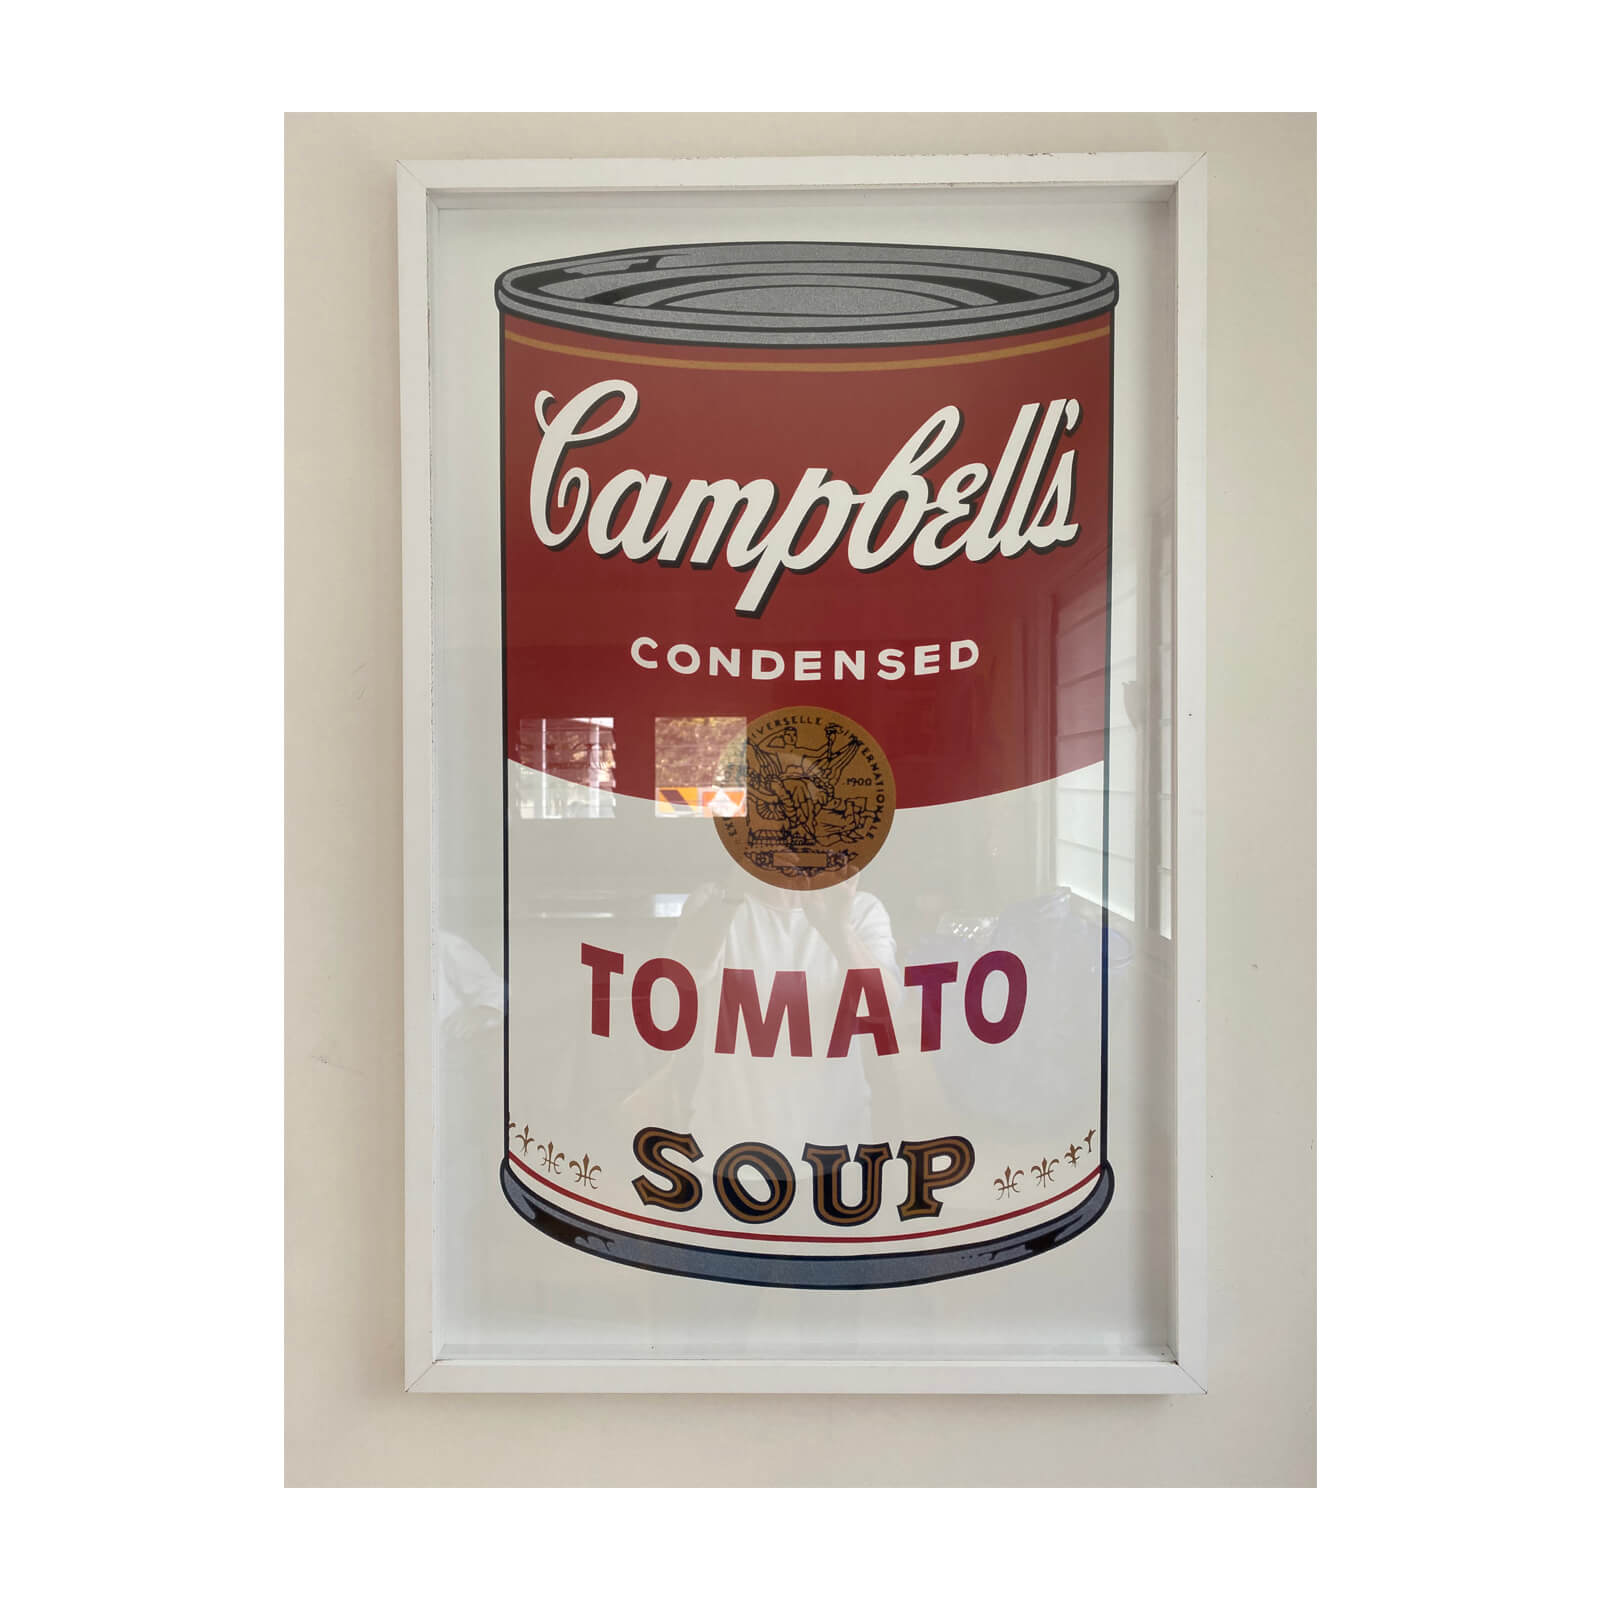 Campbells soup print in the style of Andy Warhol